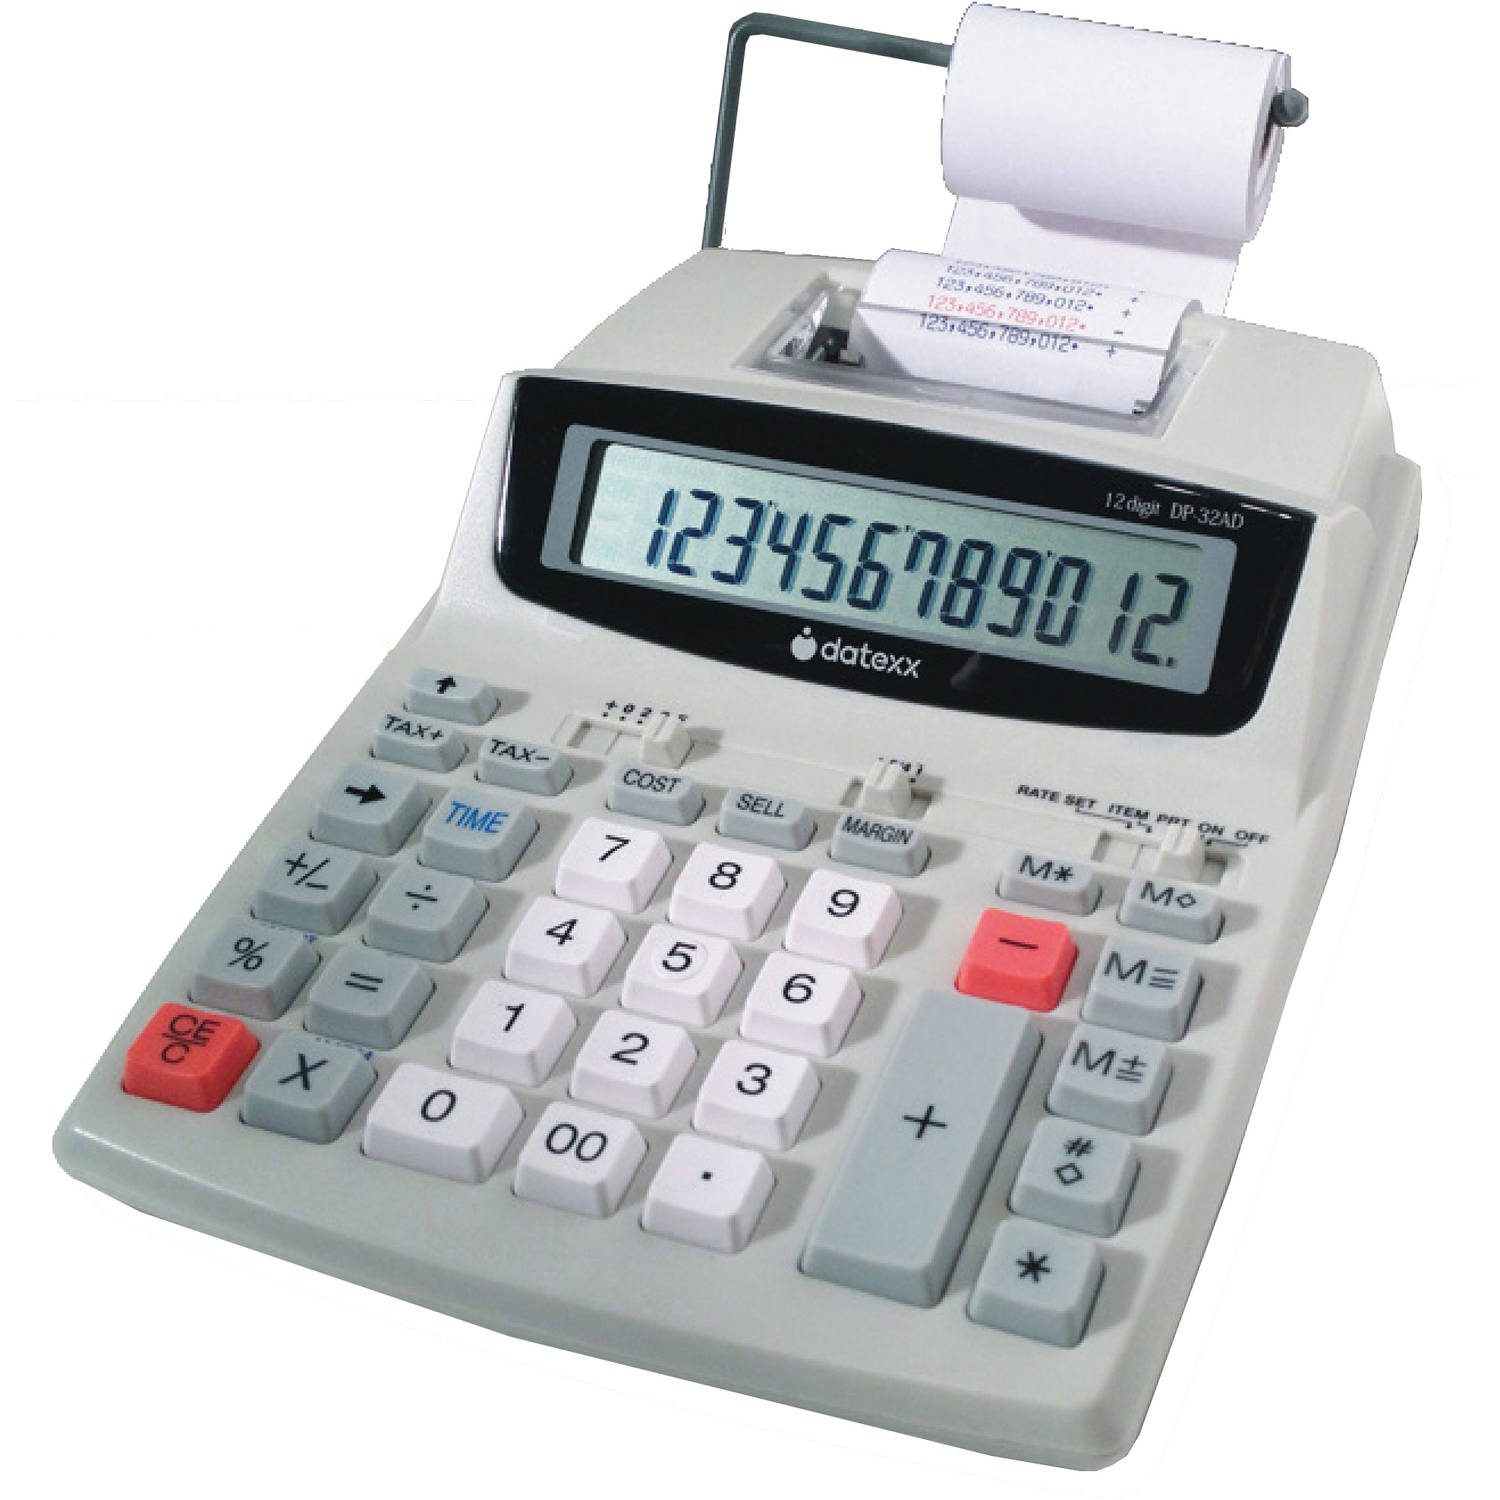 Datexx DP-32AD - Printing calculator - LCD - 12 digits - battery, AC adapter